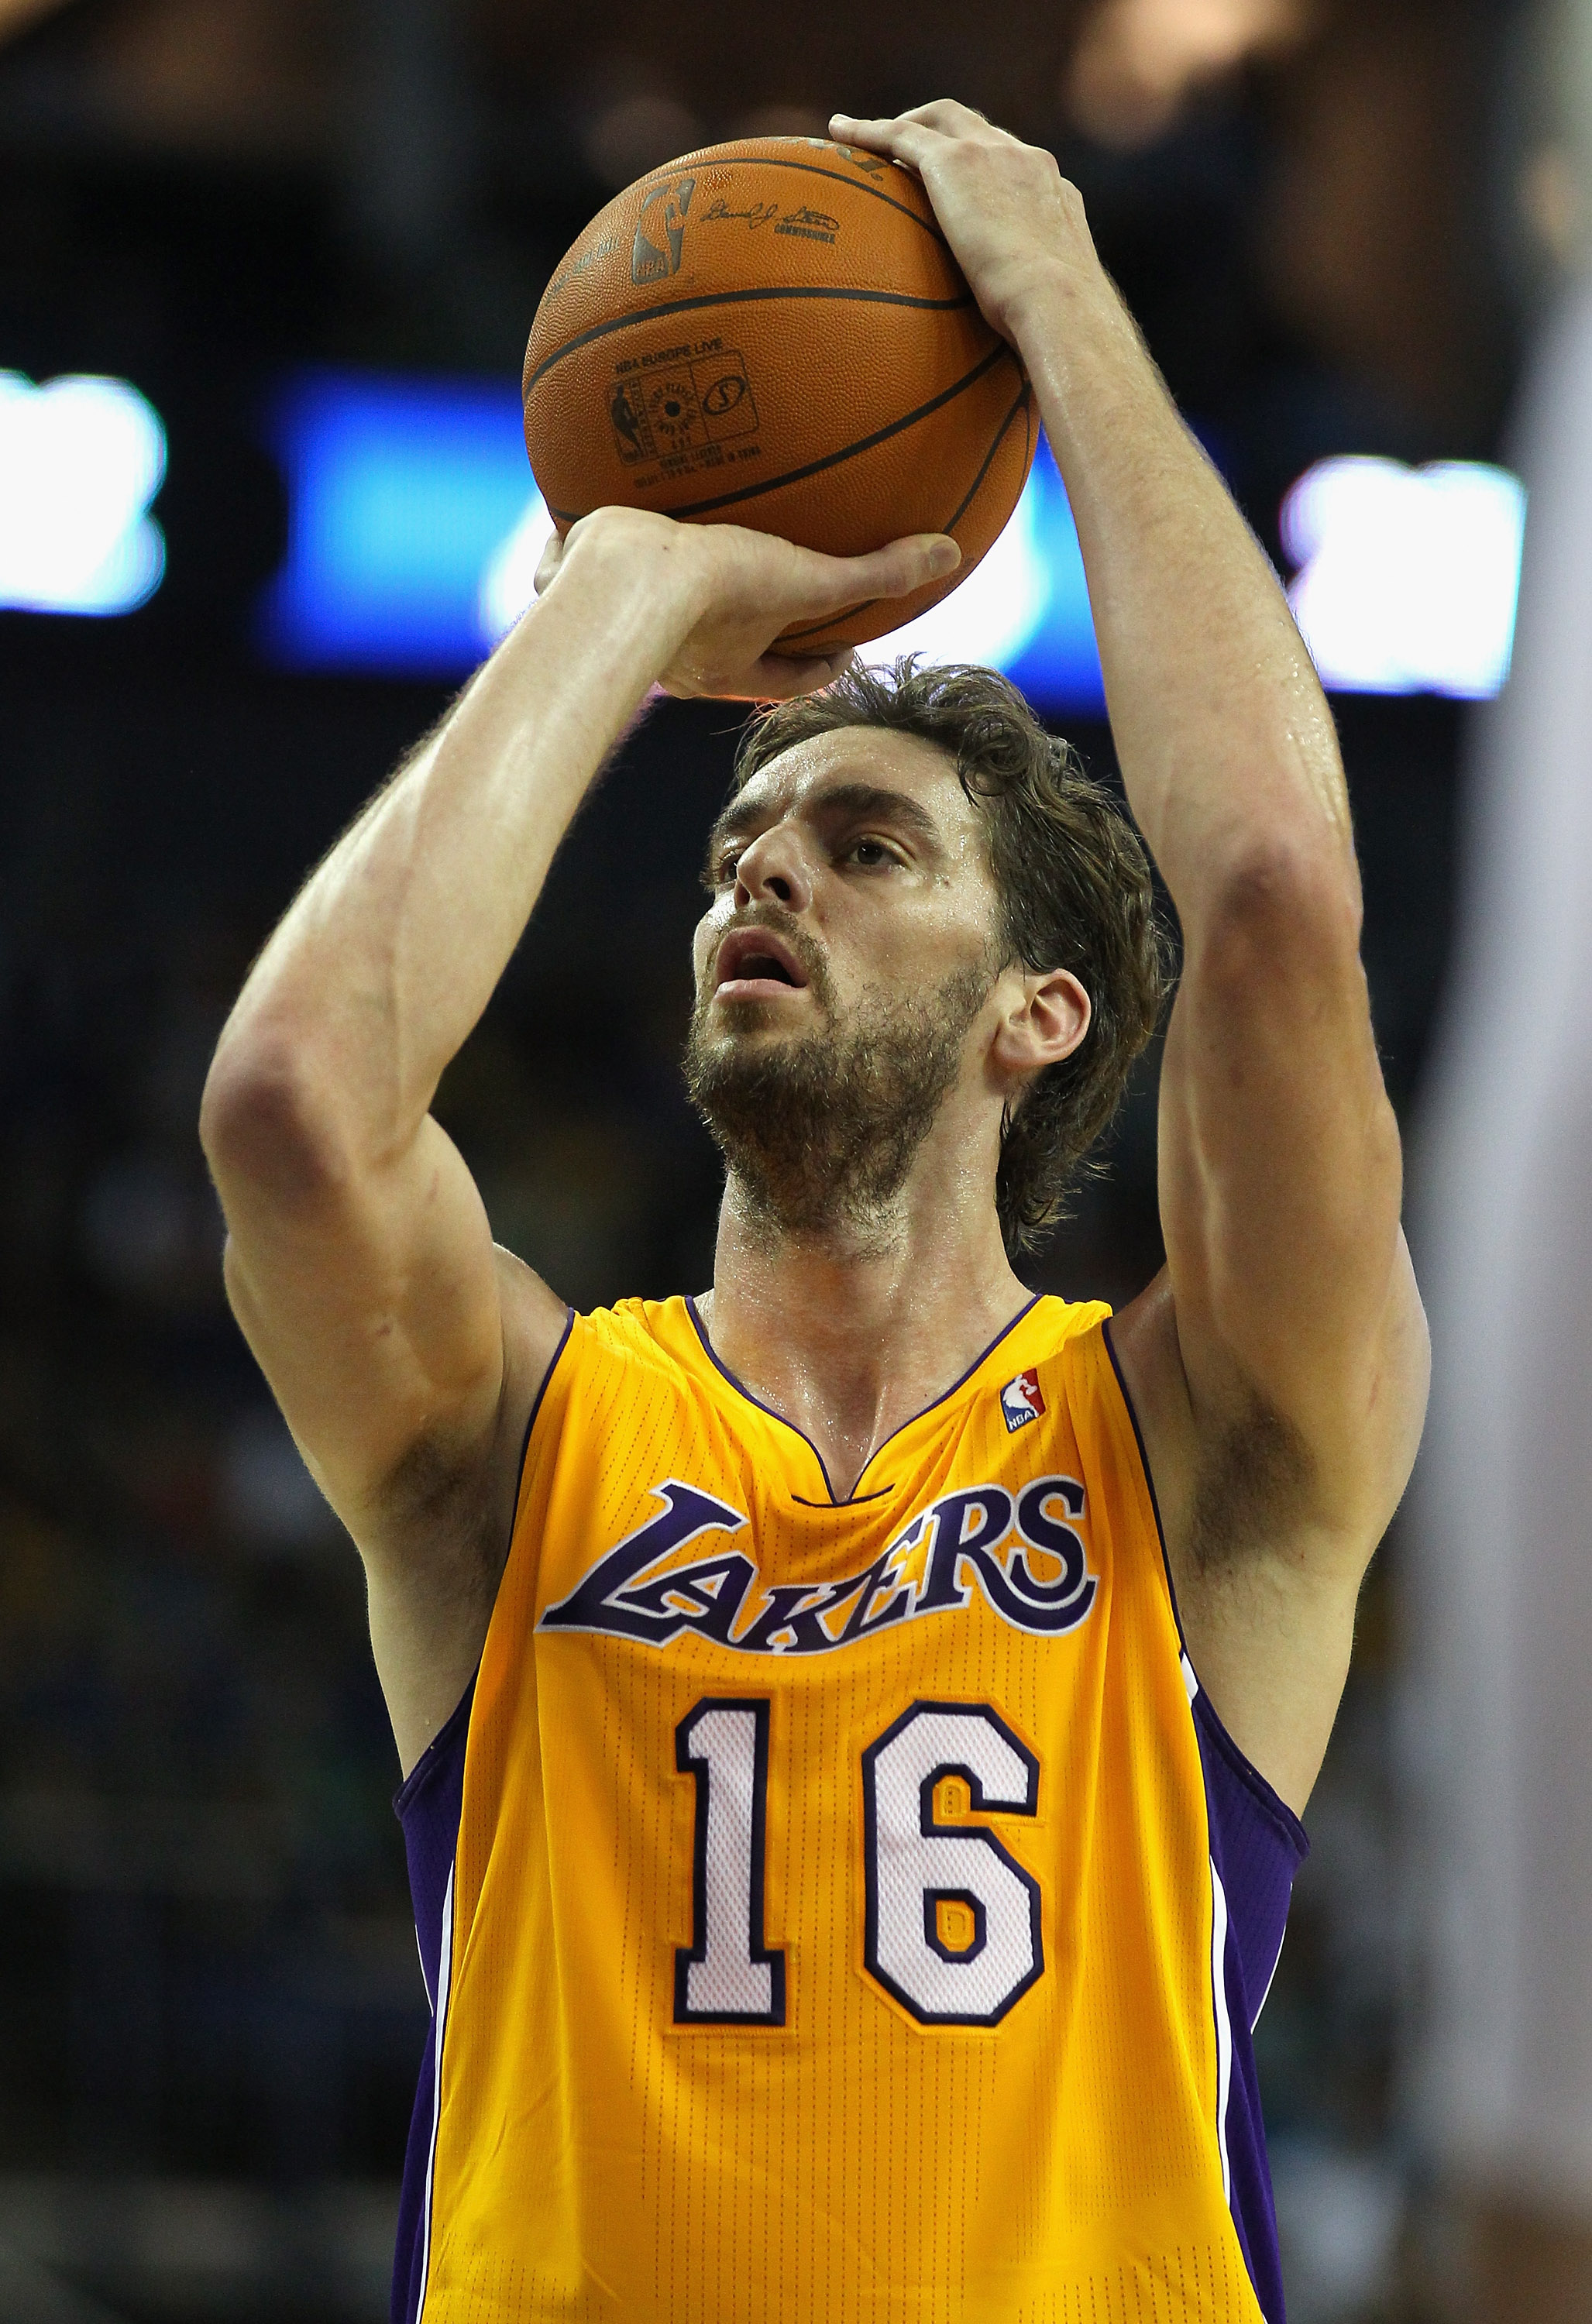 LONDON, ENGLAND - OCTOBER 04:  Pau Gasol of the Los Angeles Lakers in action during the NBA Europe Live match between the Los Angeles Lakers and the Minnesota Timberwolves at the O2 arena on October 4, 2010 in London, England.  (Photo by Clive Rose/Getty